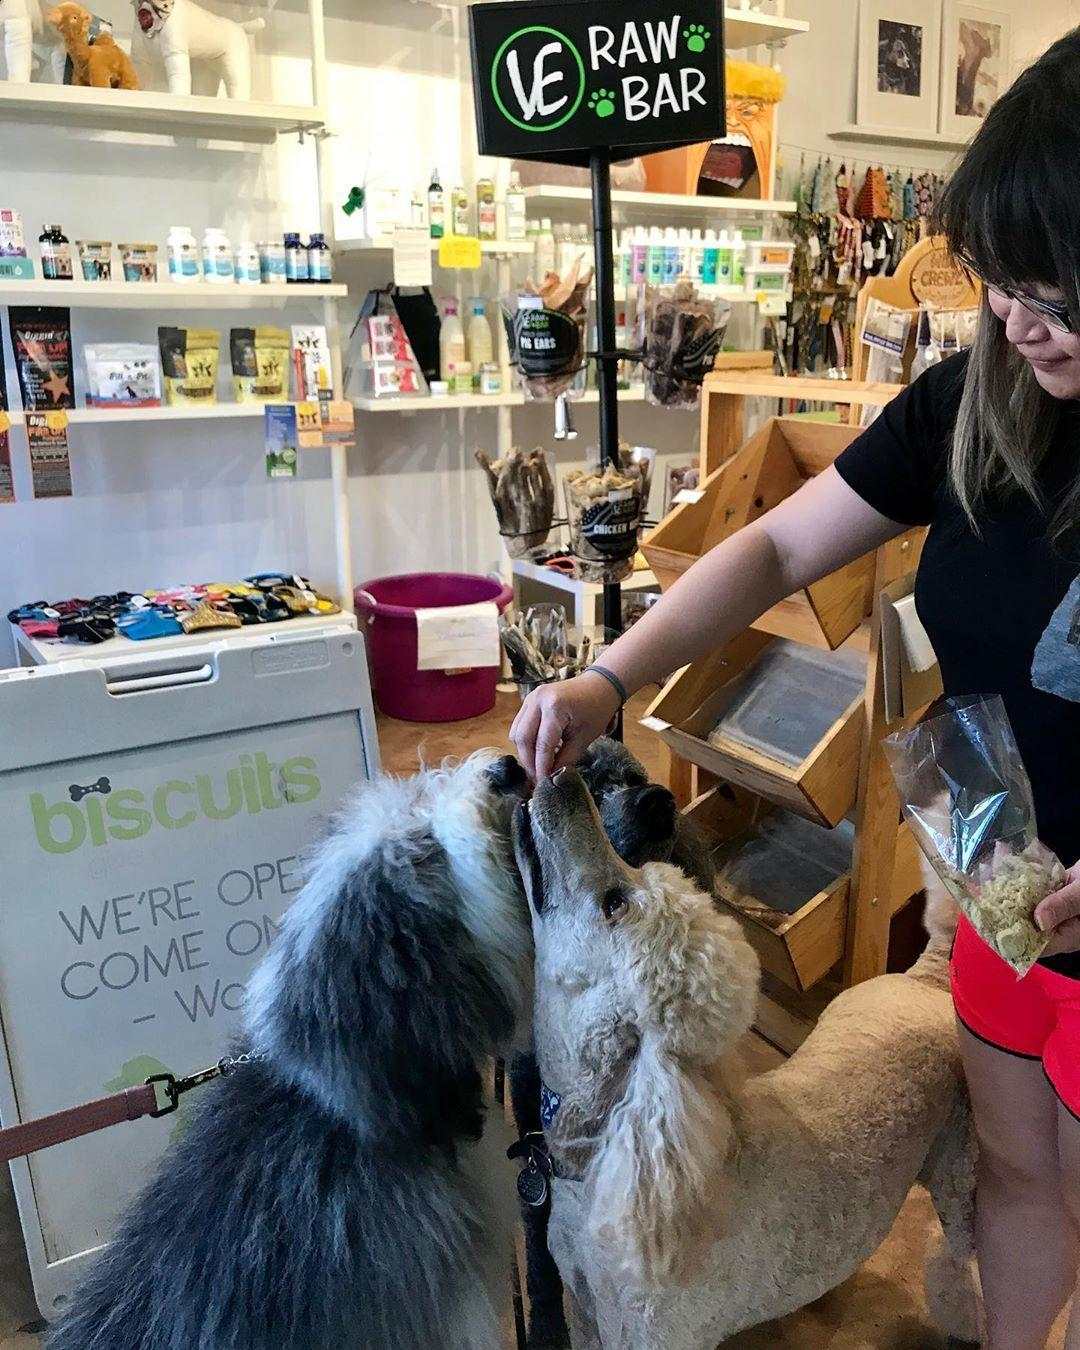 Visit Biscuits - Give a Dog a Bone in San Jose for dog treats, food and toys.